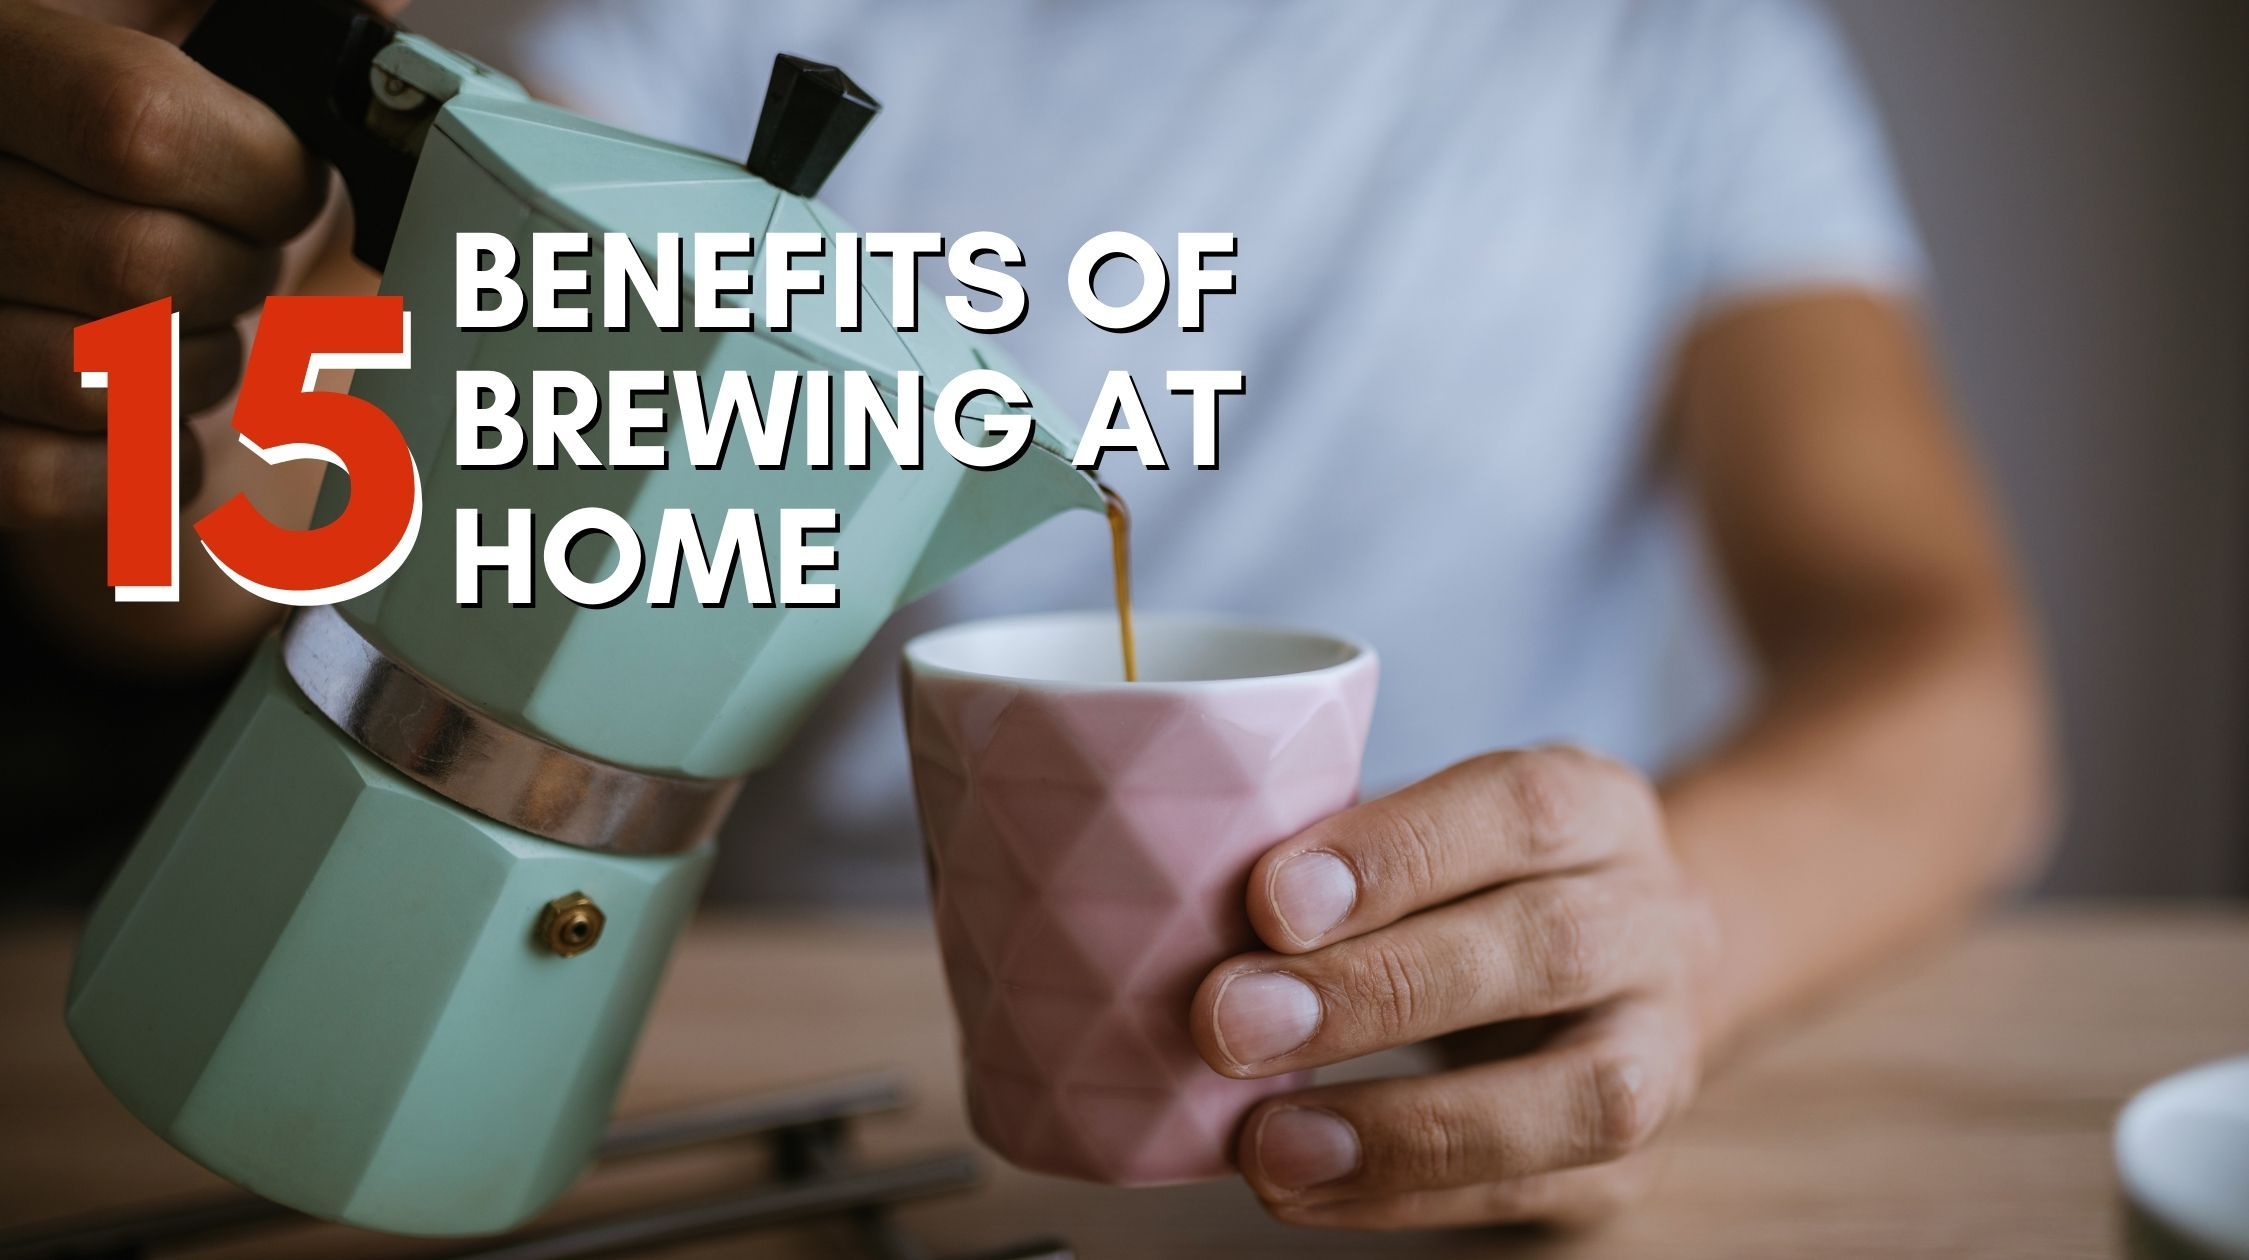 The 15 Benefits of Home-brewed Coffee